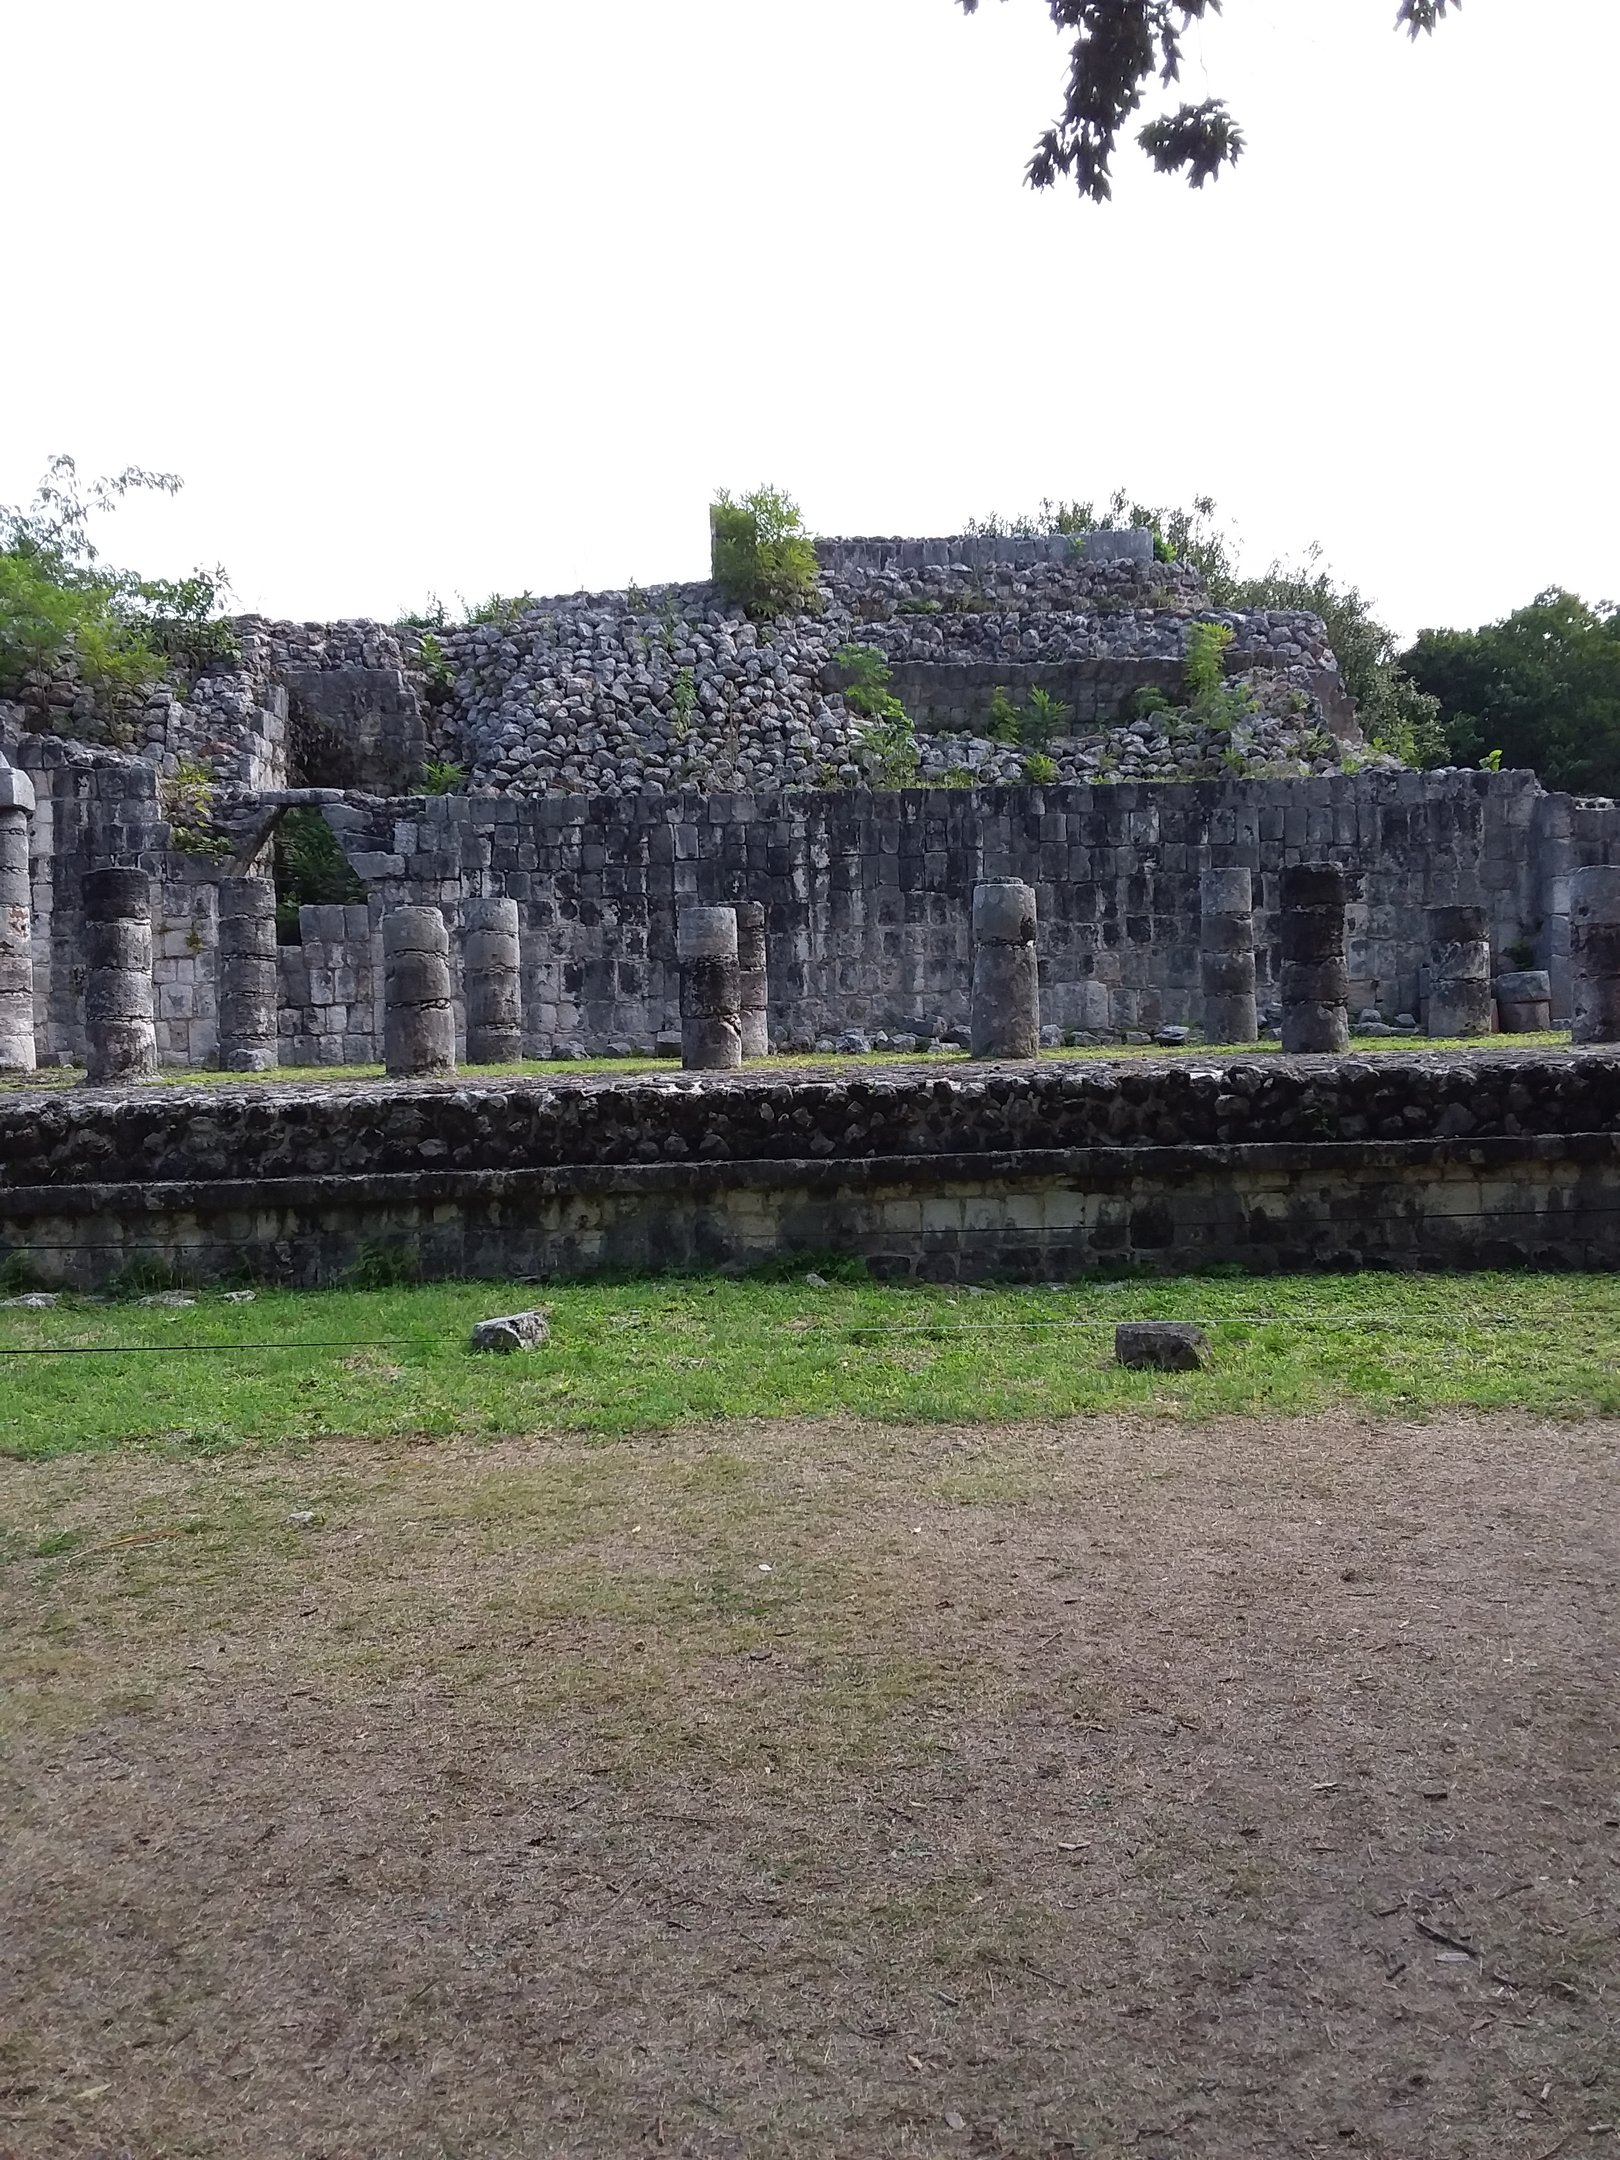 20181224_082305-jpg.48203_Chichen Itza (Not So Much a Story Than It Is Pictures)_Travel Stories_Squat the Planet_4:02 PM